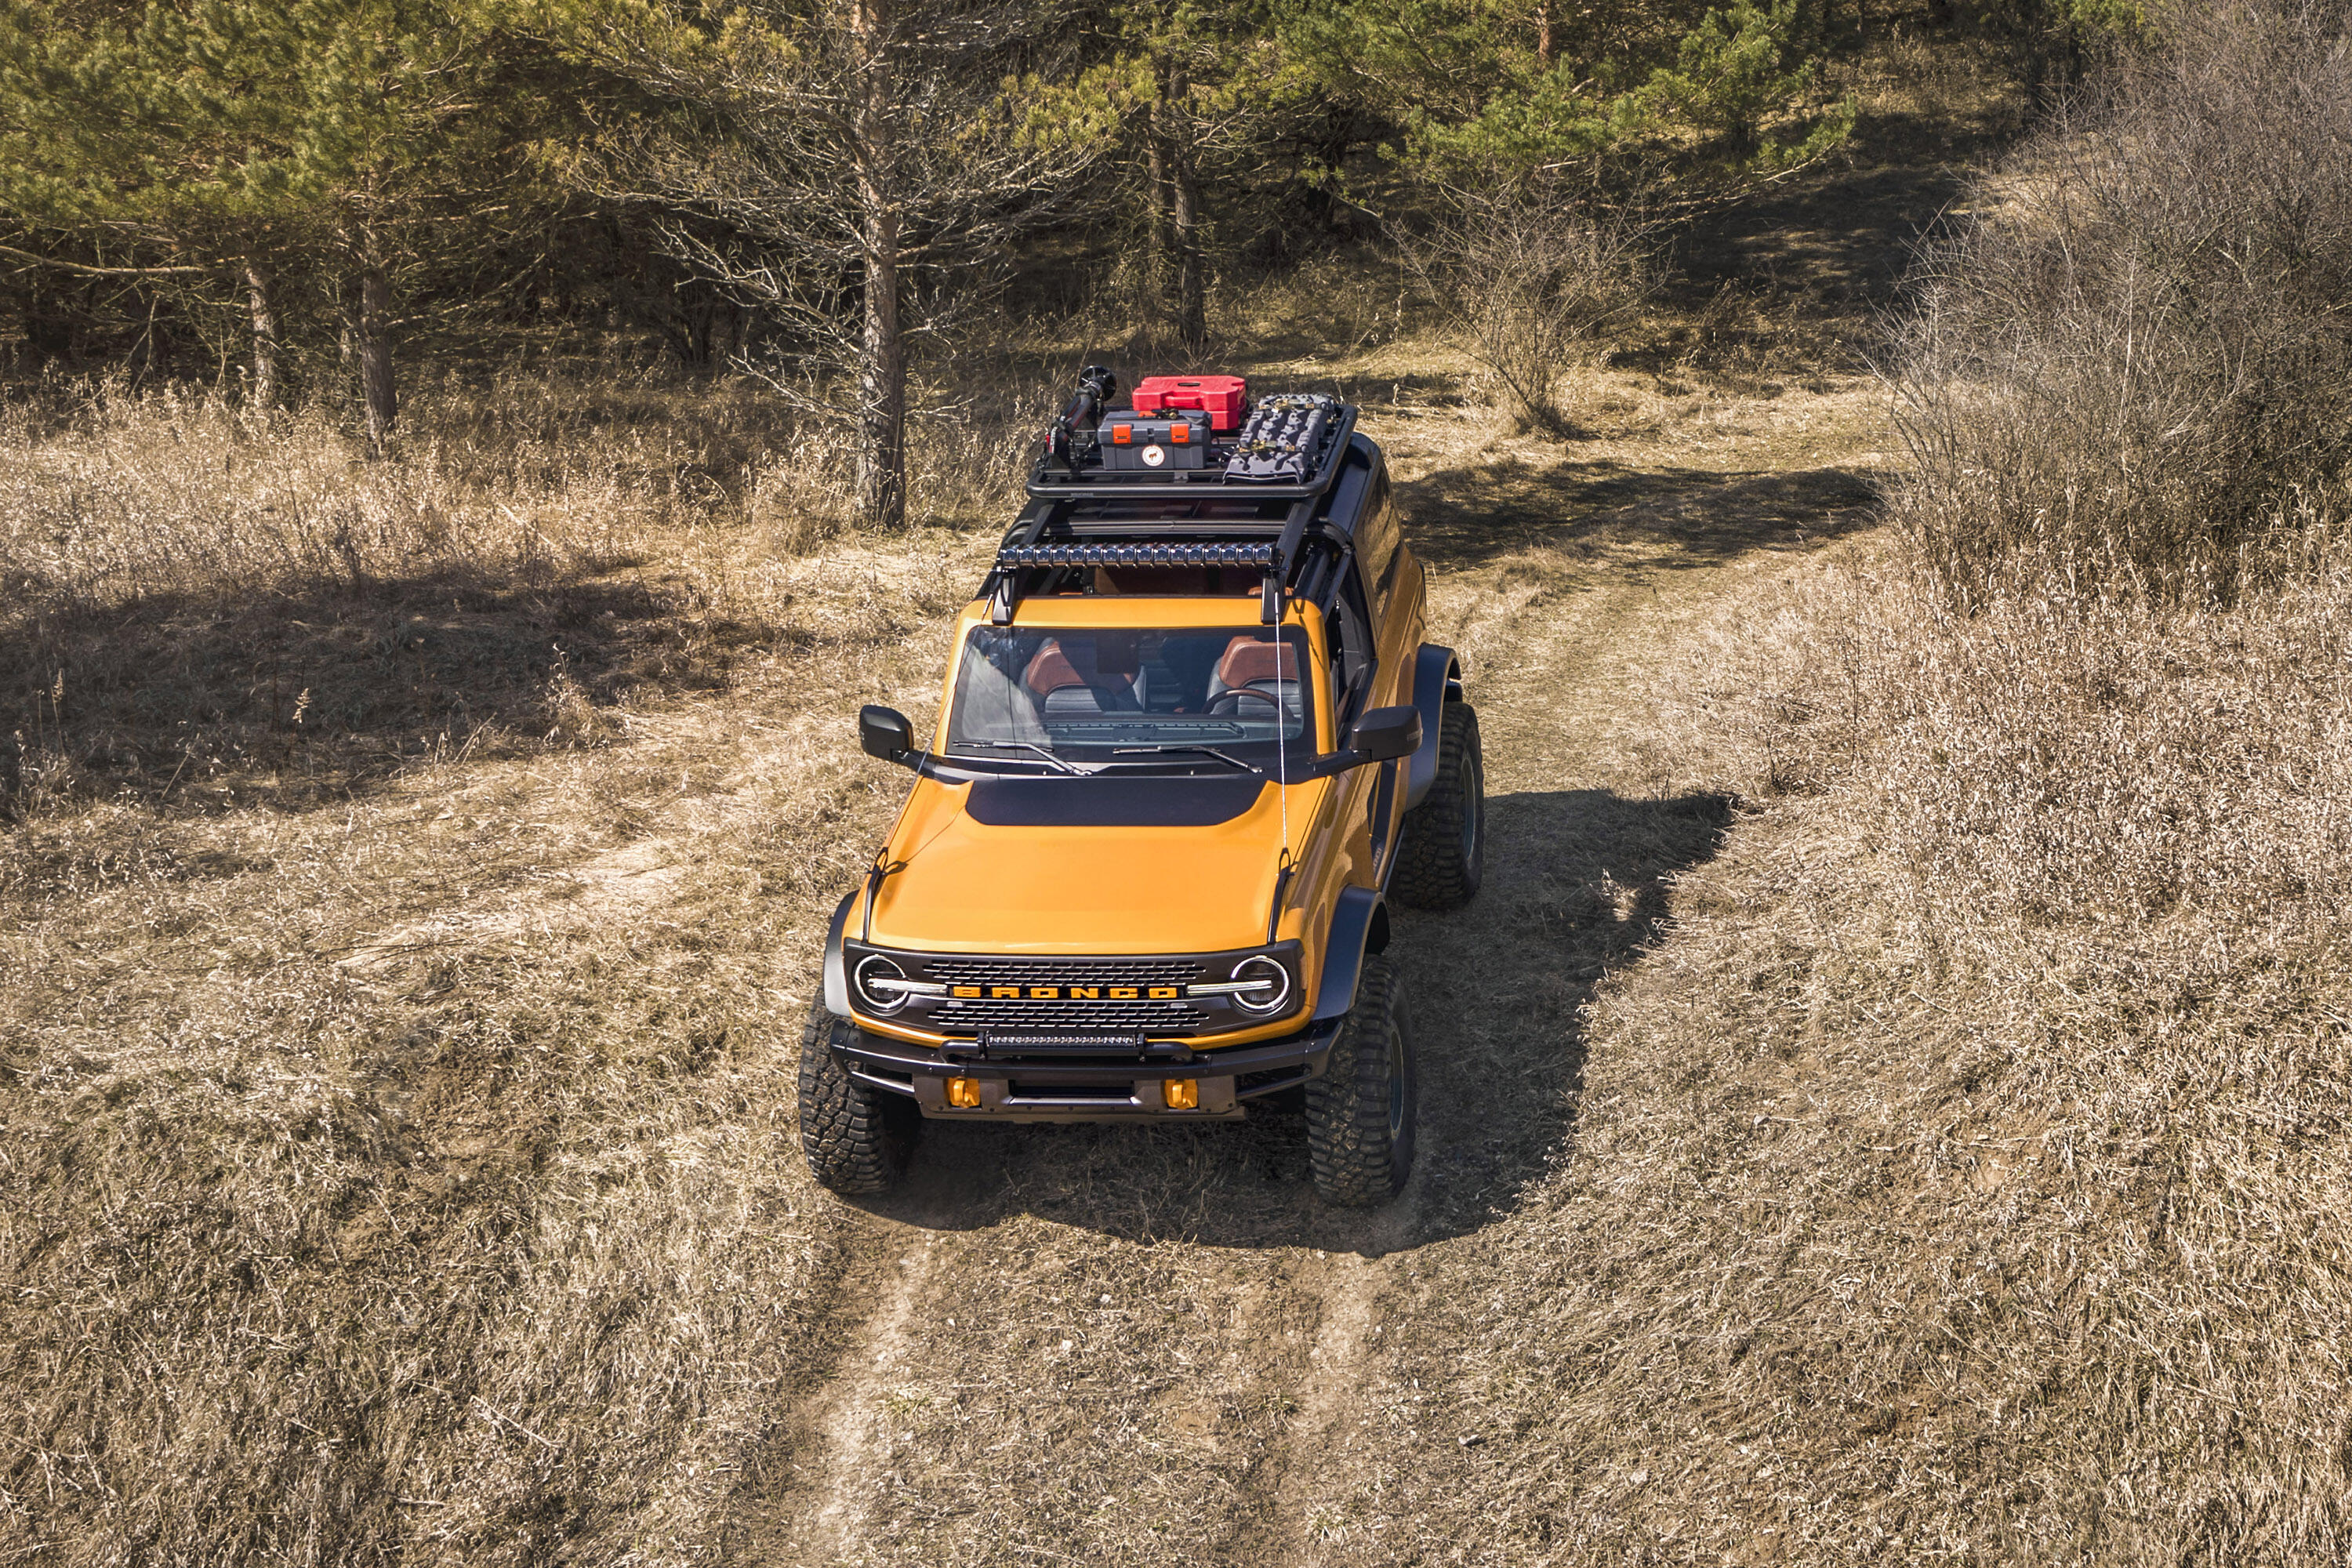 2021 Ford Bronco 2-Door on the trail